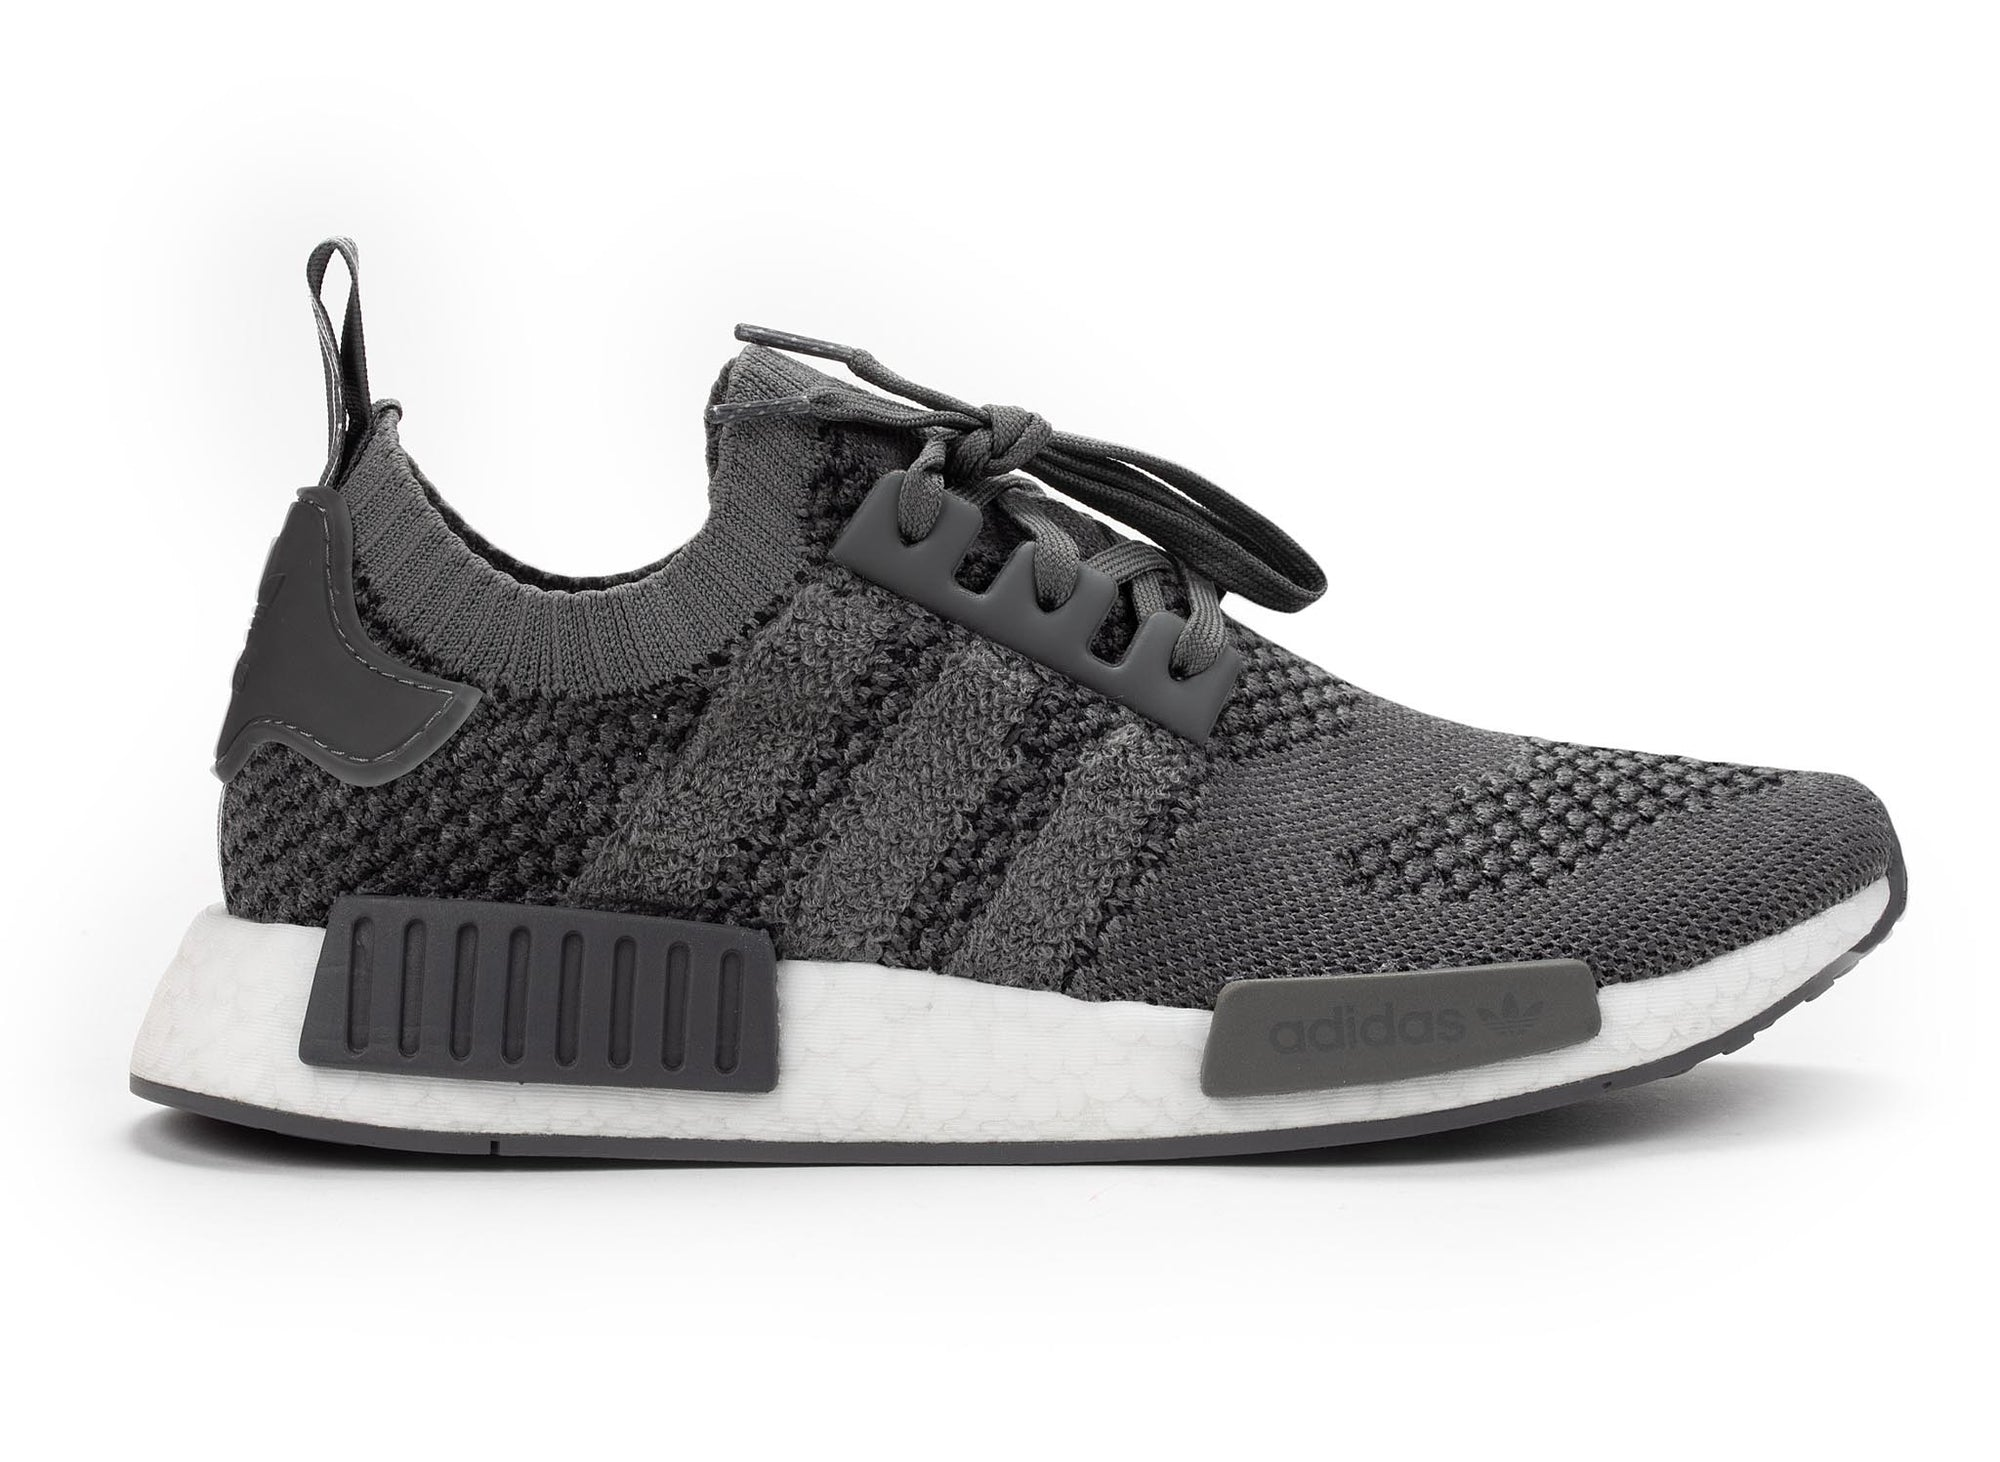 best website 5feeb f9304 adidas NMD R1 Primeknit 'Ash Grey'